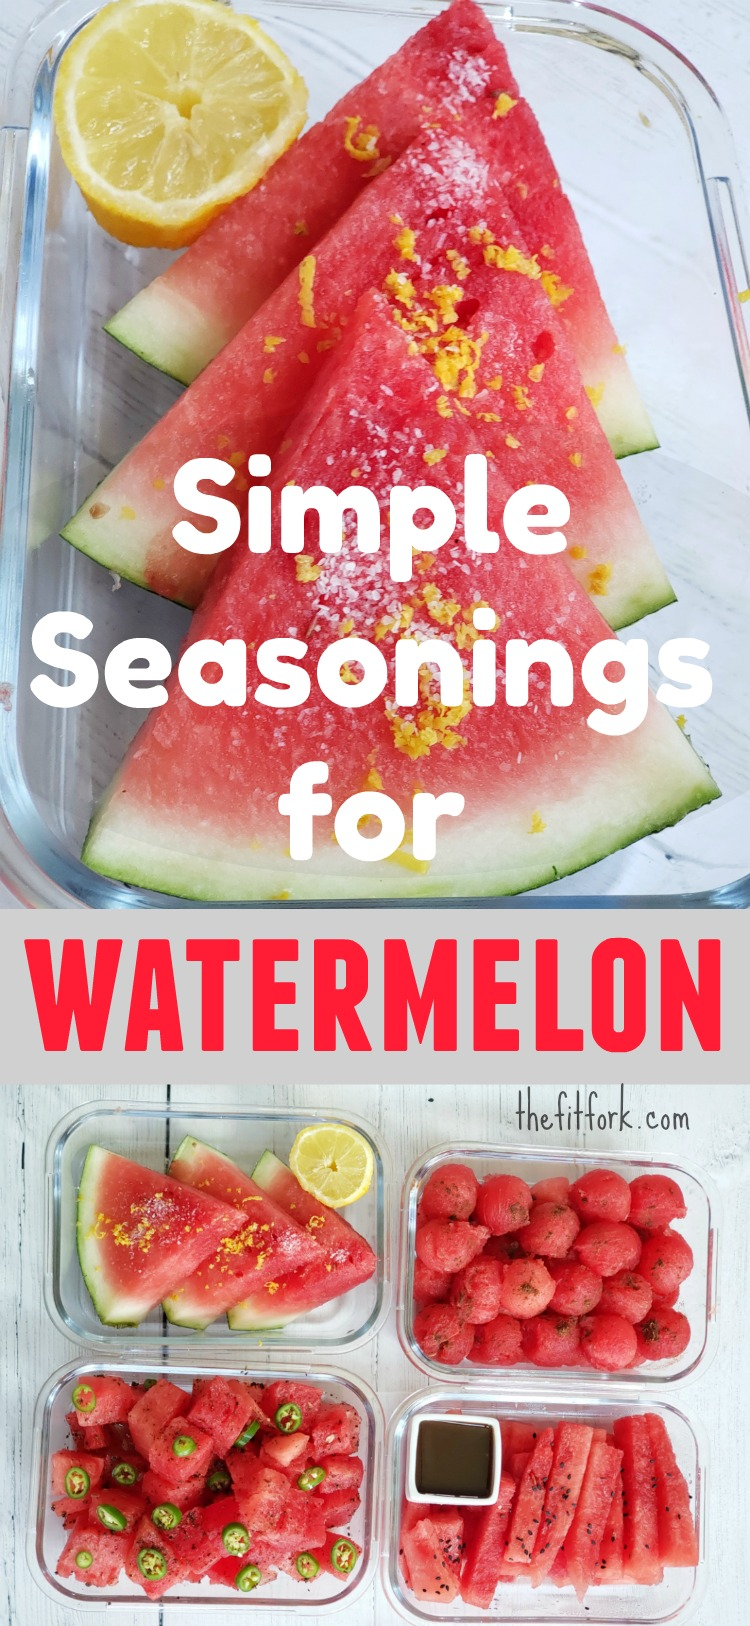 Watermelon seasoning